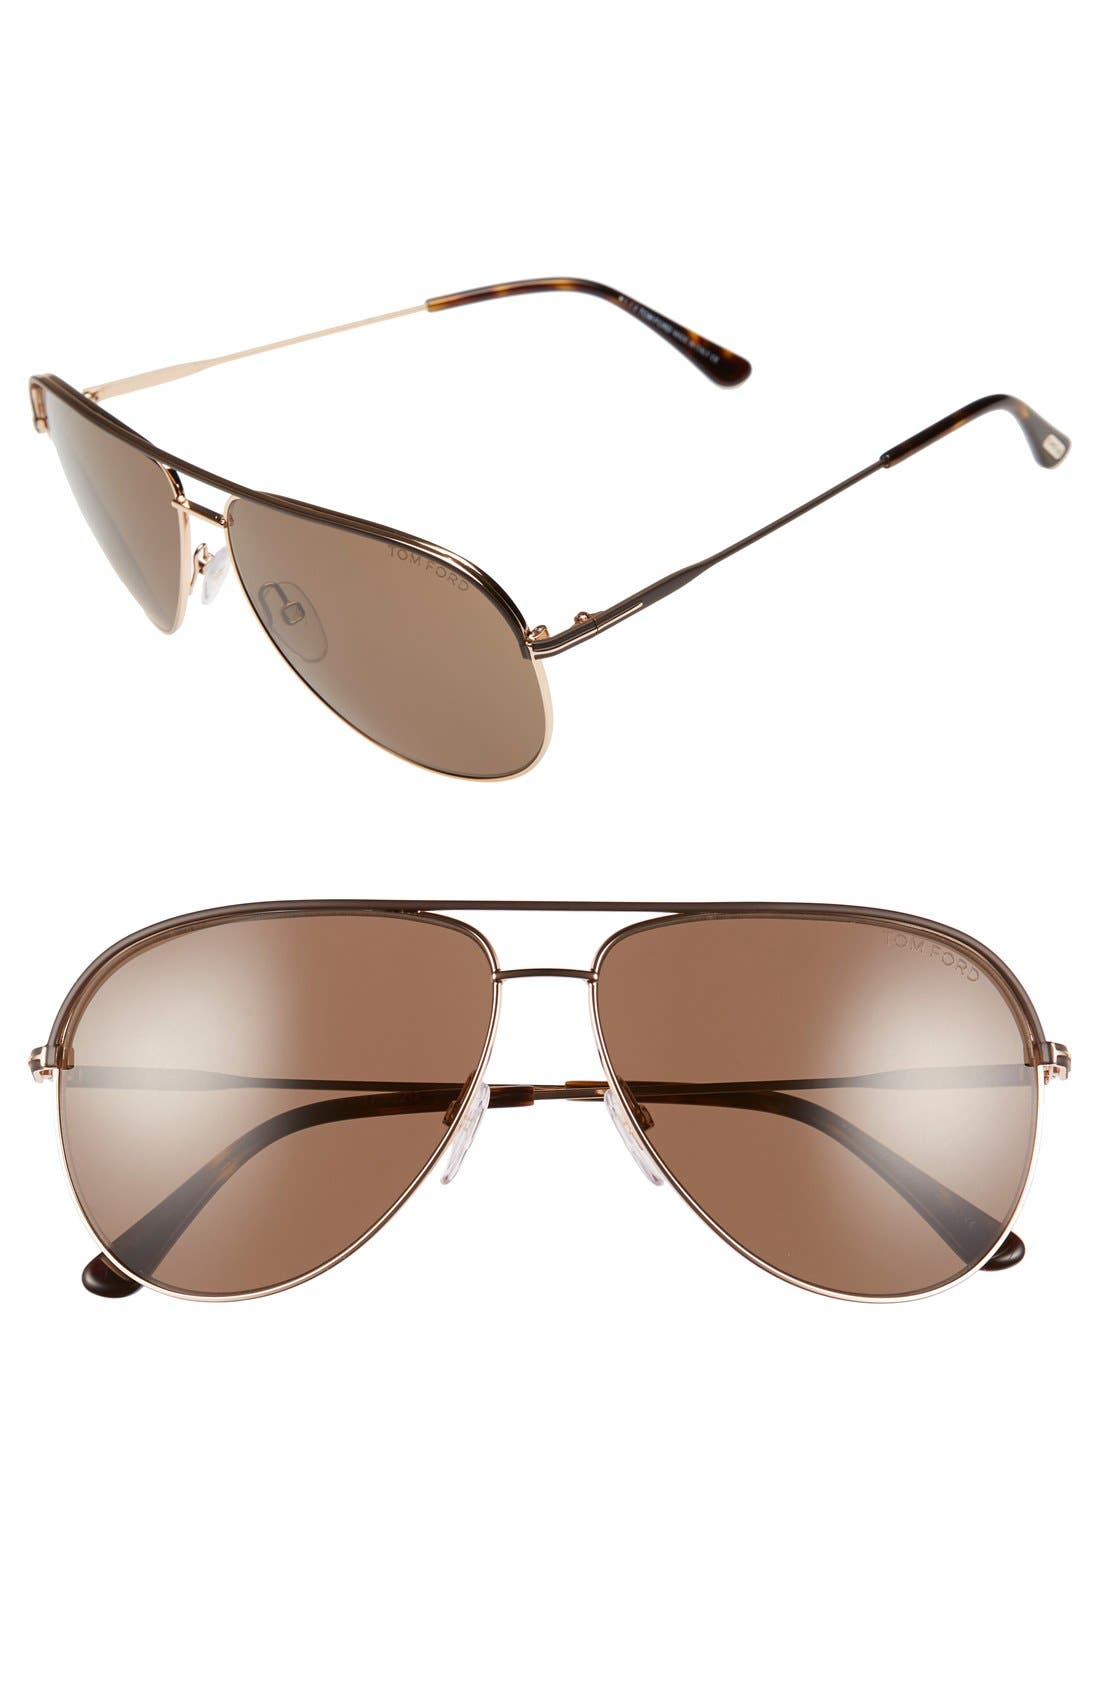 Alternate Image 1 Selected - Tom Ford 'Erin' 61mm Aviator Sunglasses